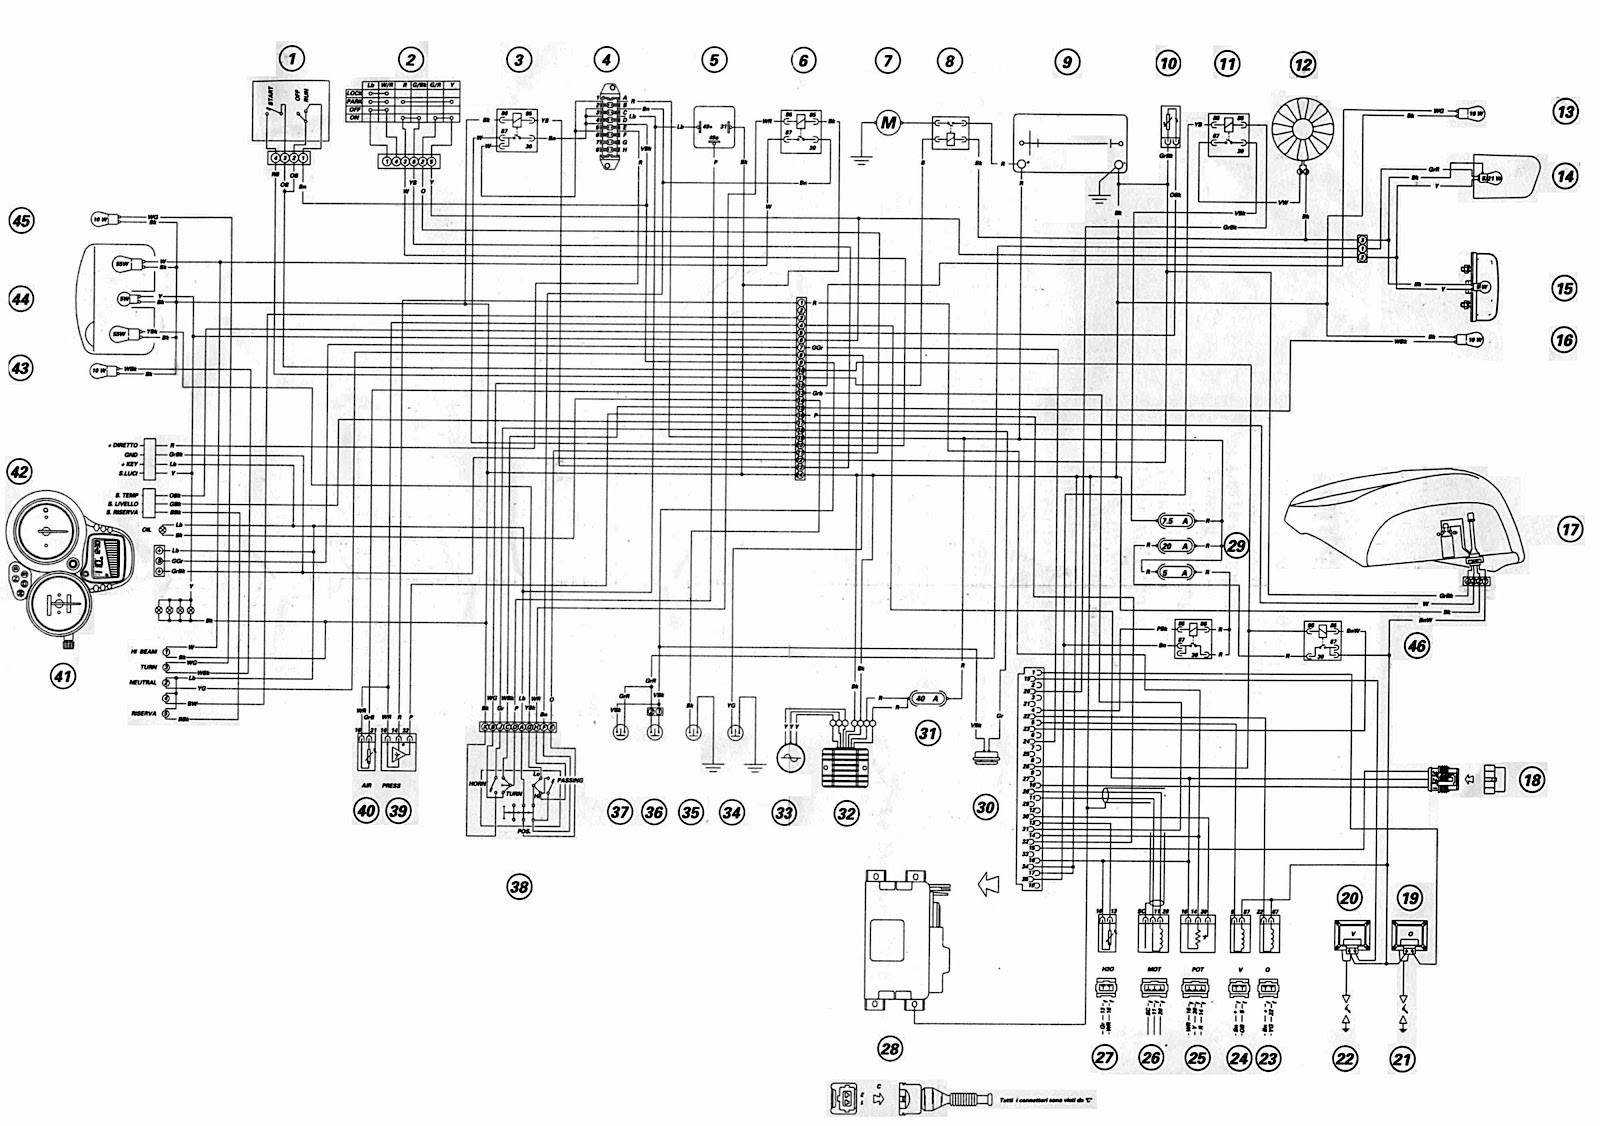 hight resolution of ducati st4 2002 motorcycle wiring diagram